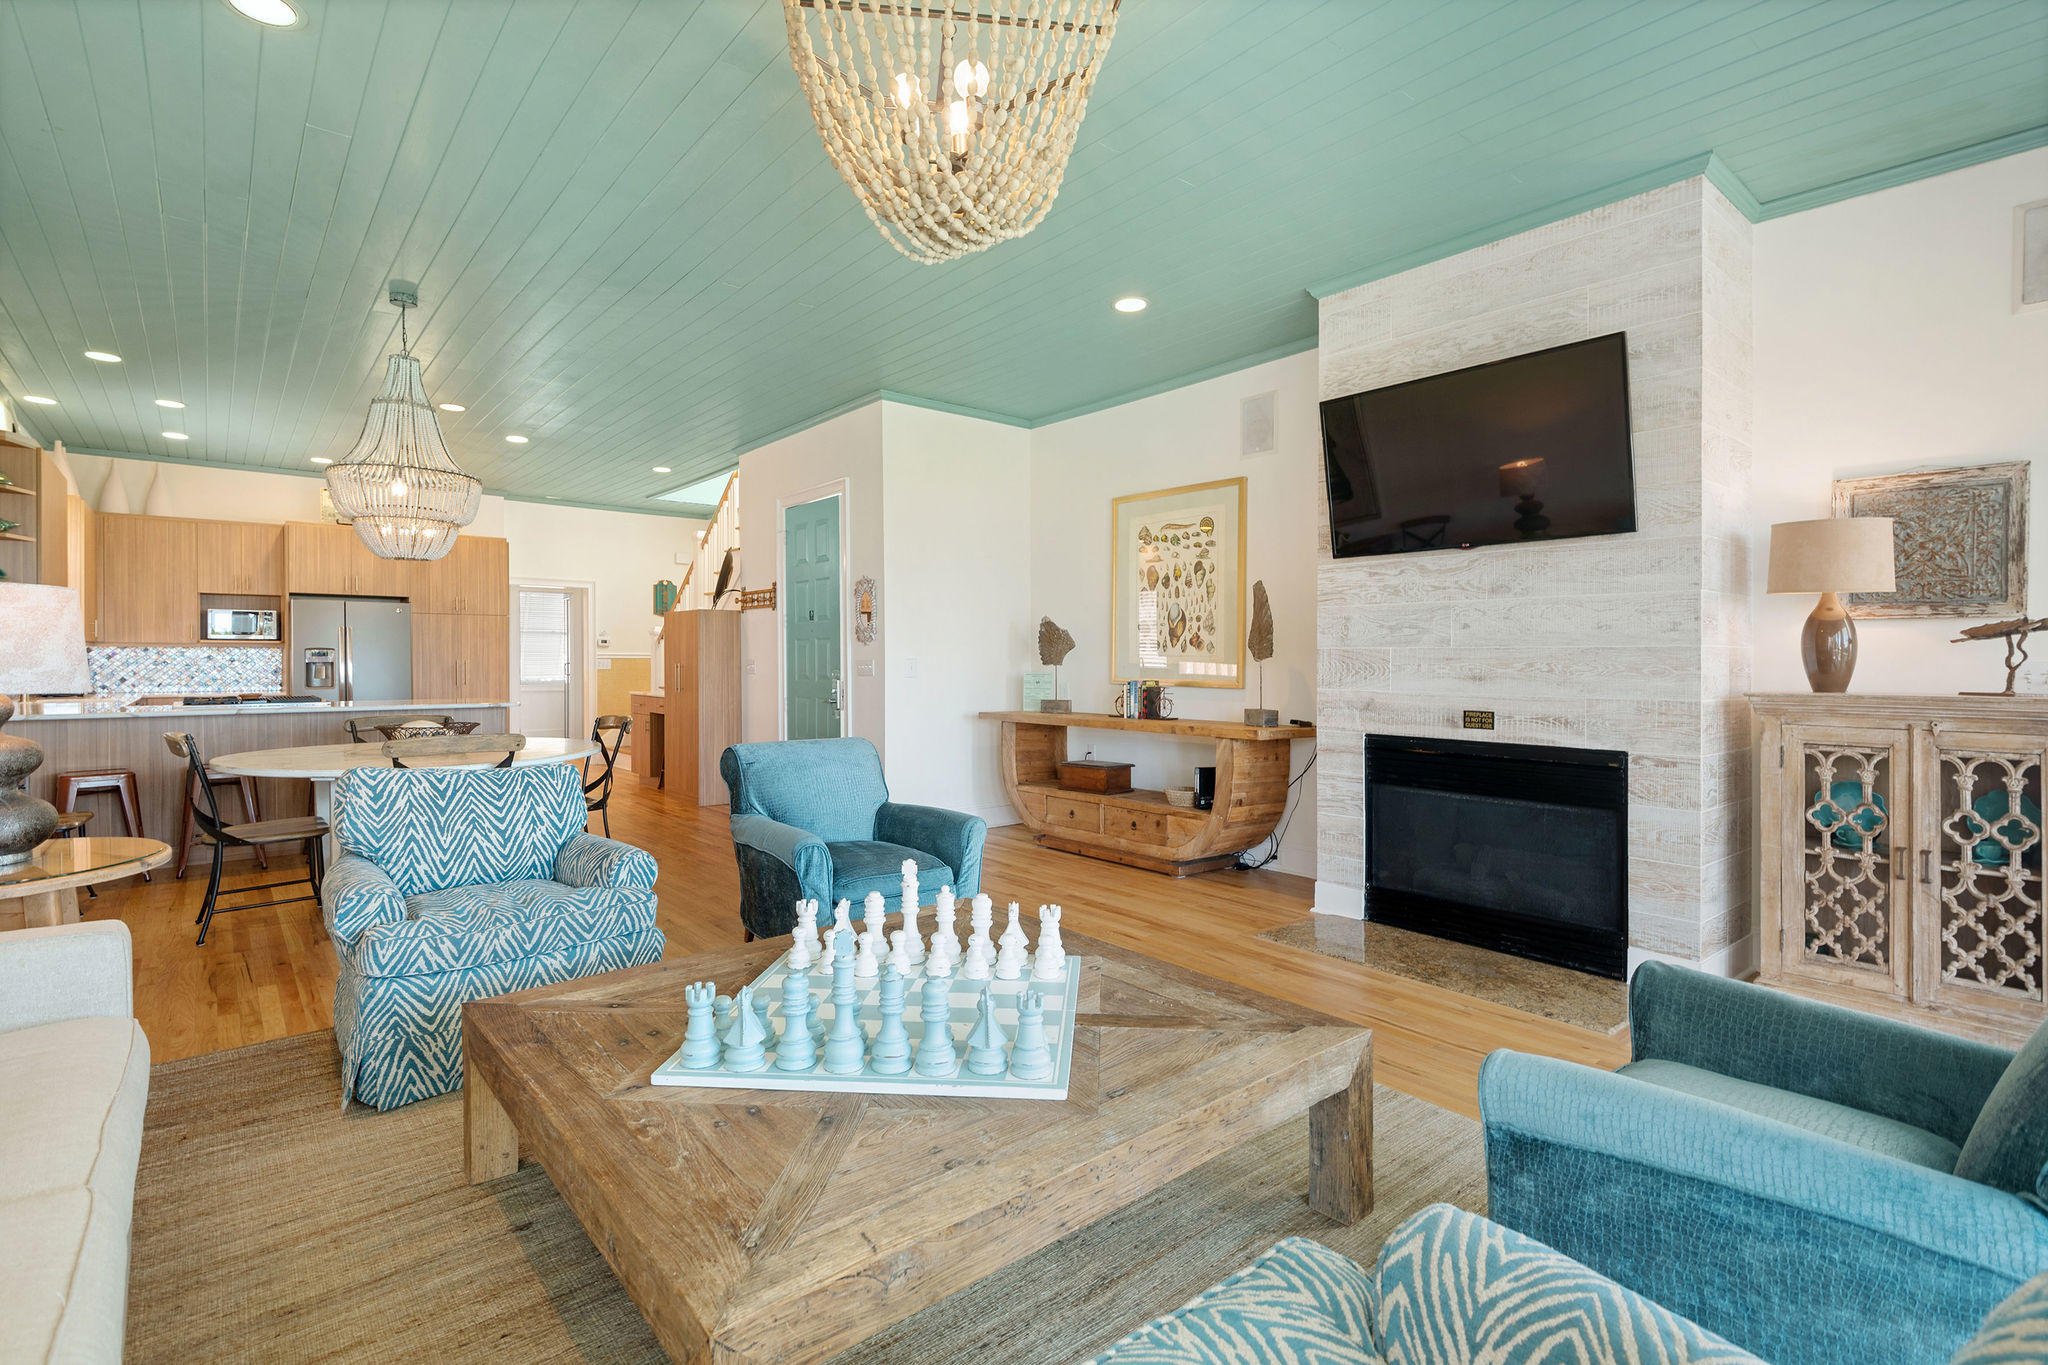 Wild Dunes Homes For Sale - 15 Grand Pavilion, Isle of Palms, SC - 11